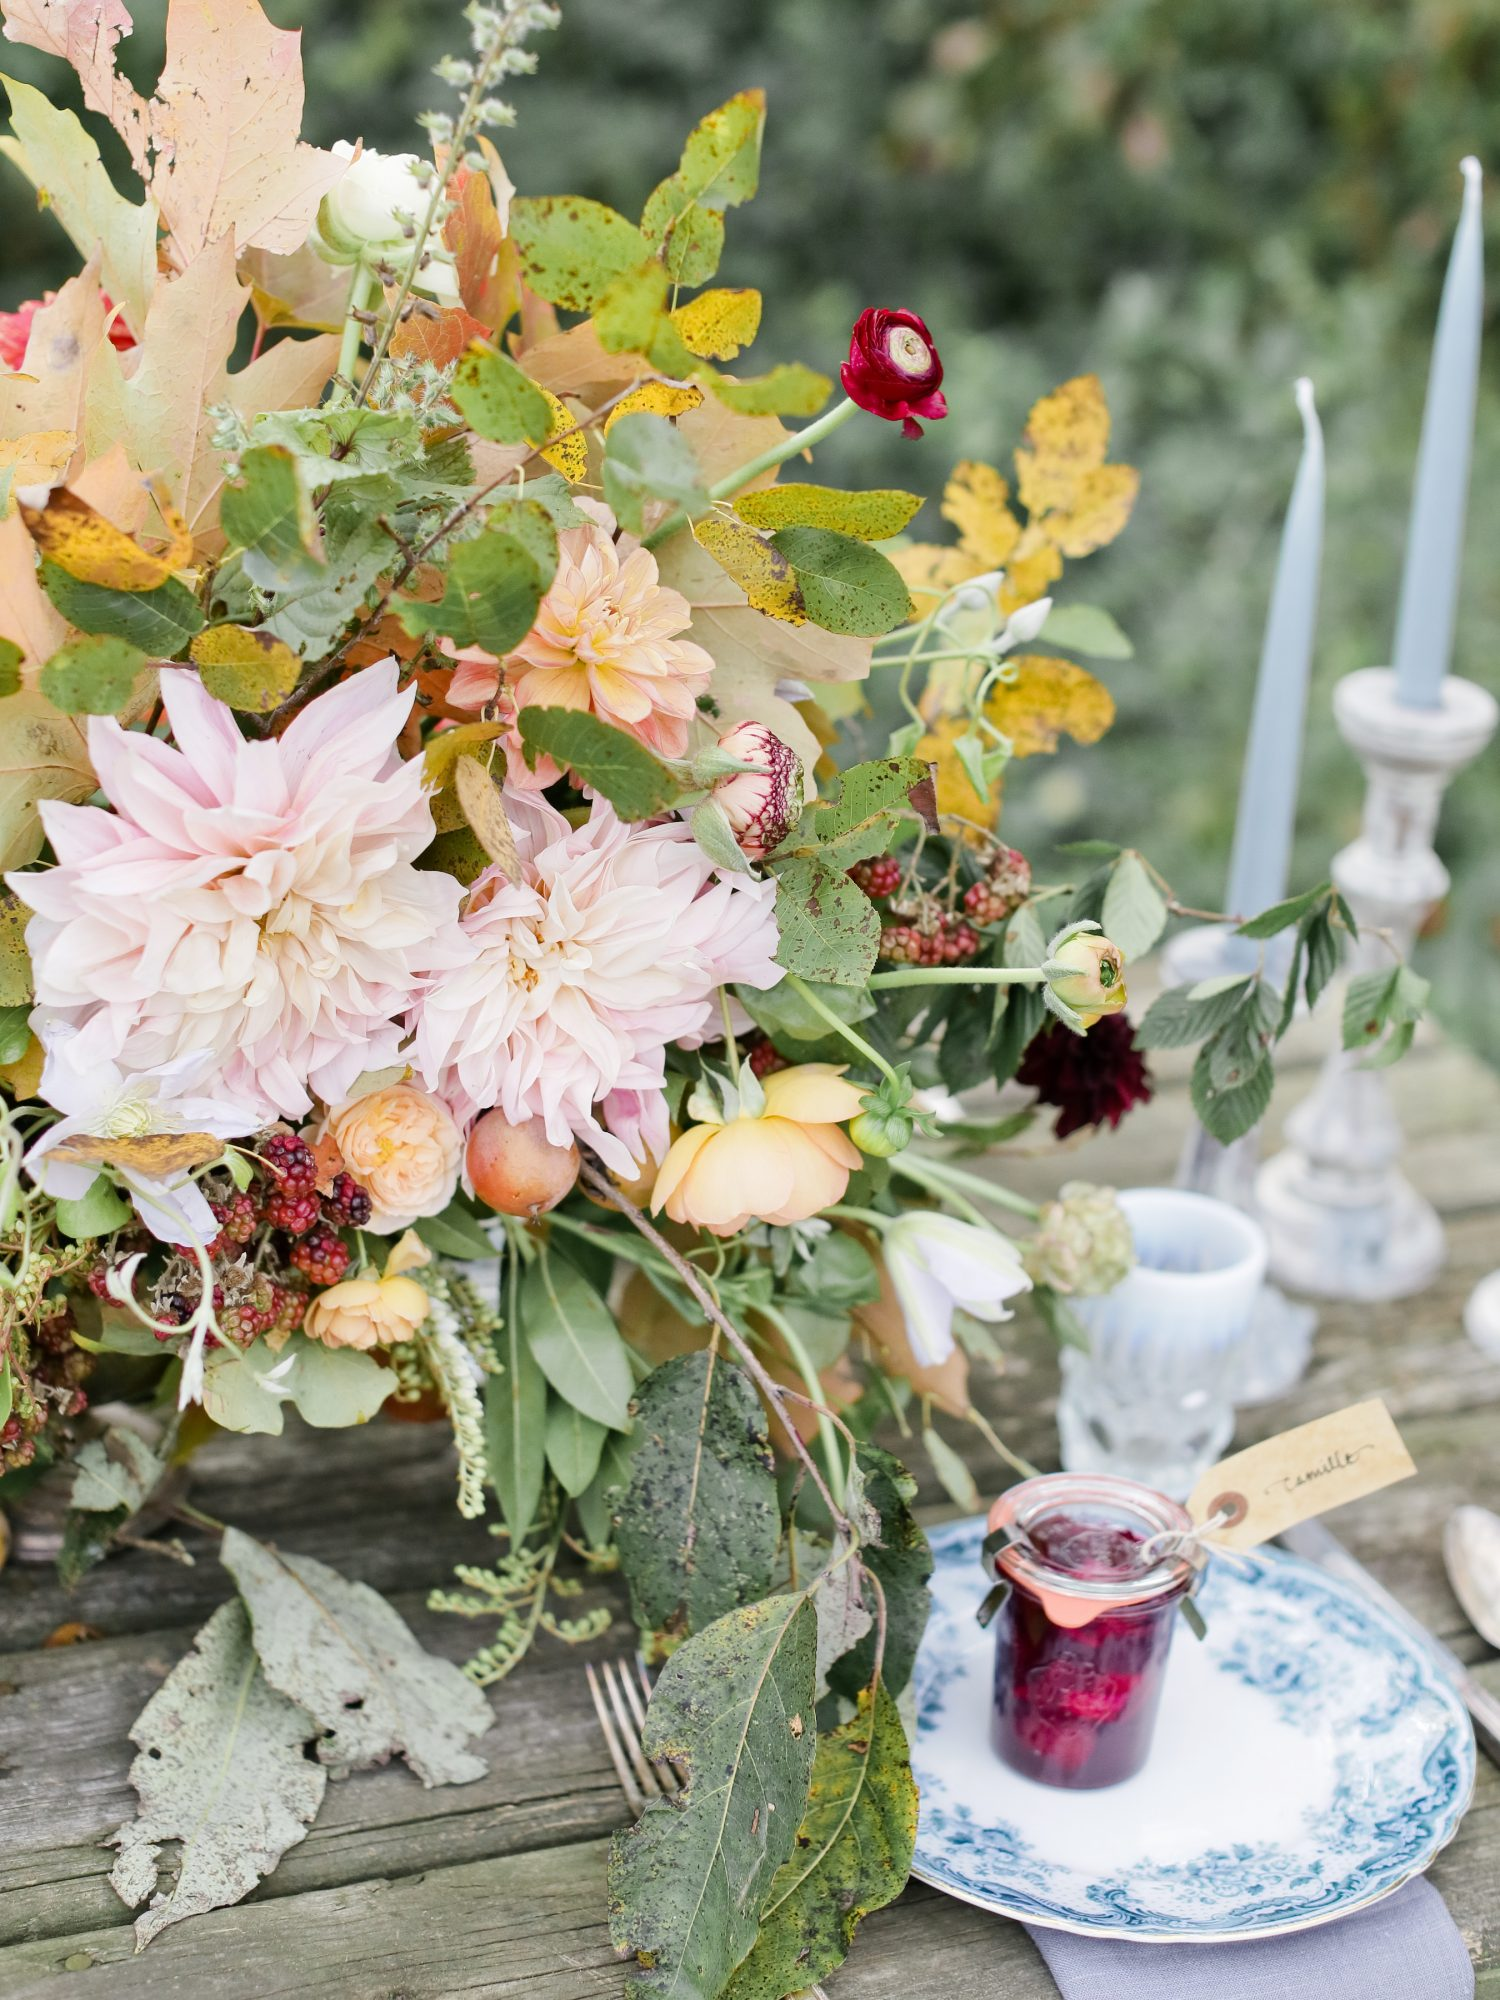 poppies-posies-thanksgiving-table-1116.jpg (skyword:358450)